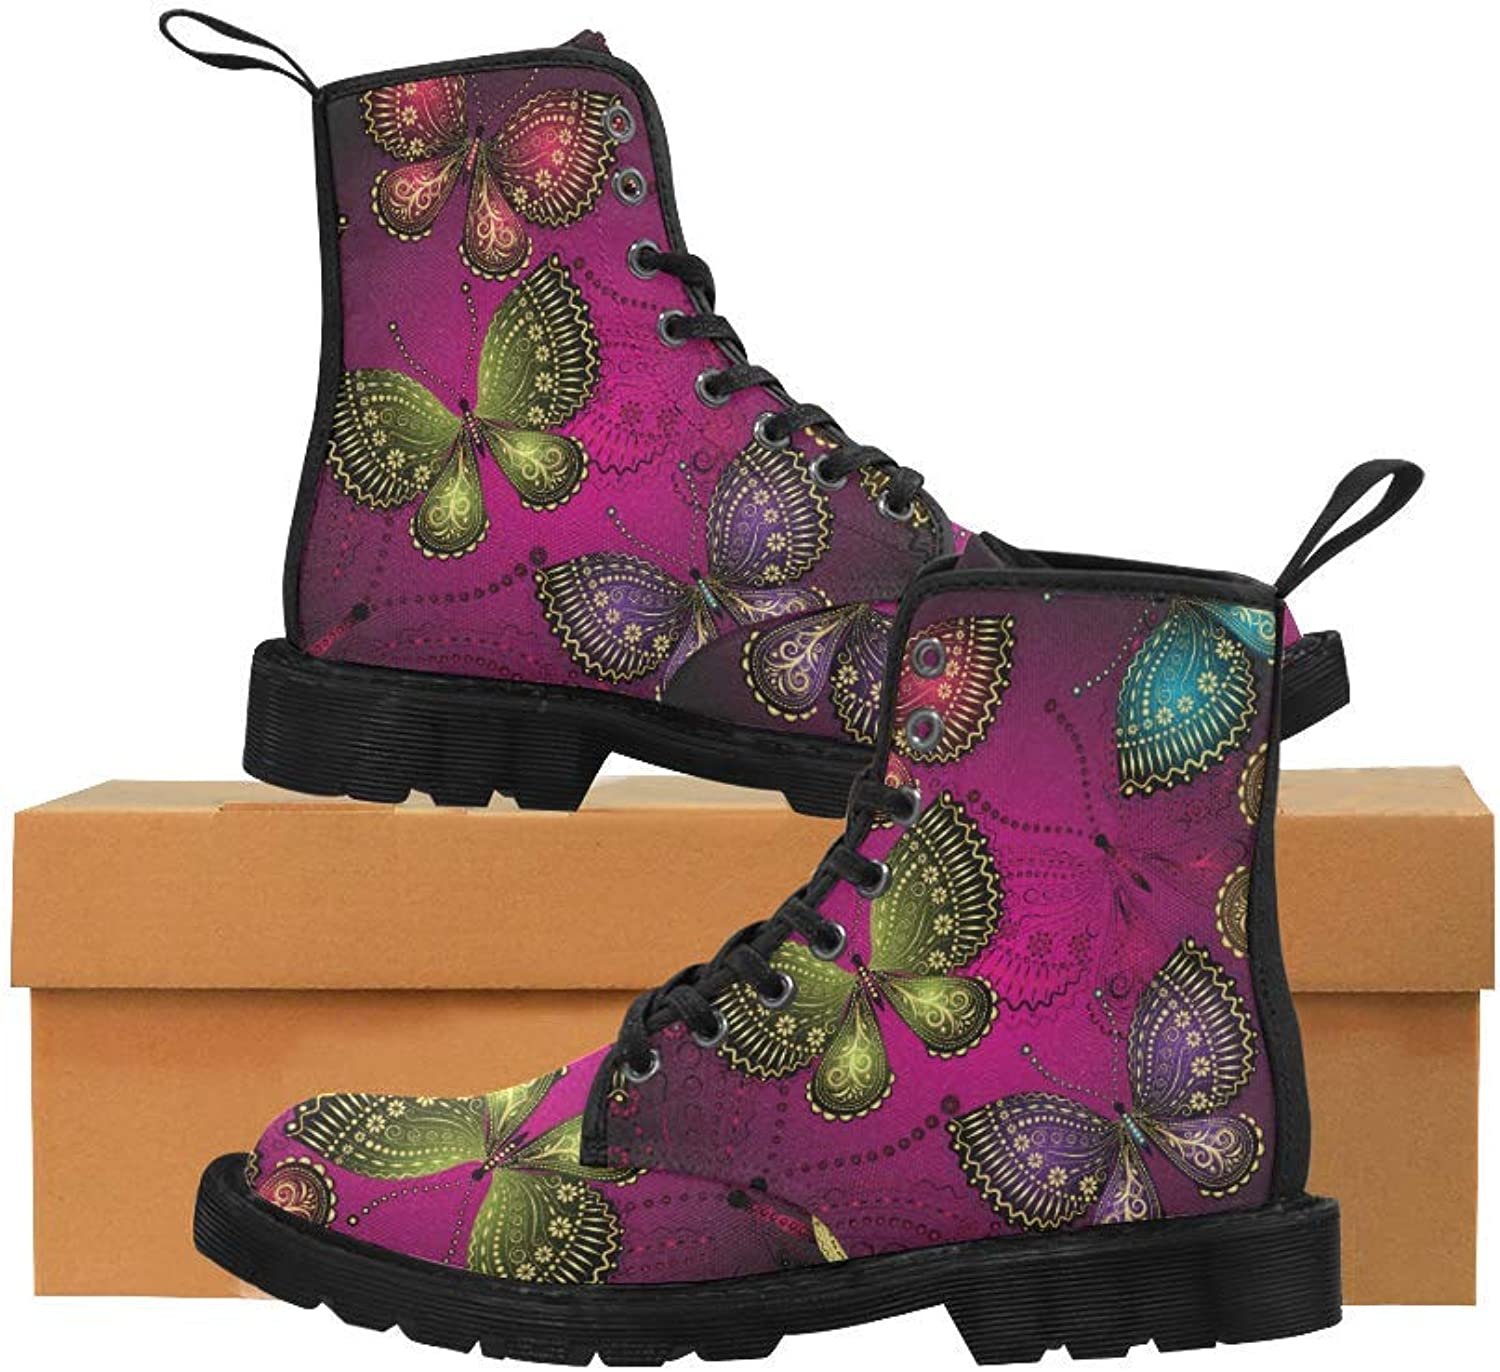 InterestPrint Unique Martin Boots Lace Up Canvas Combat for Women Girl